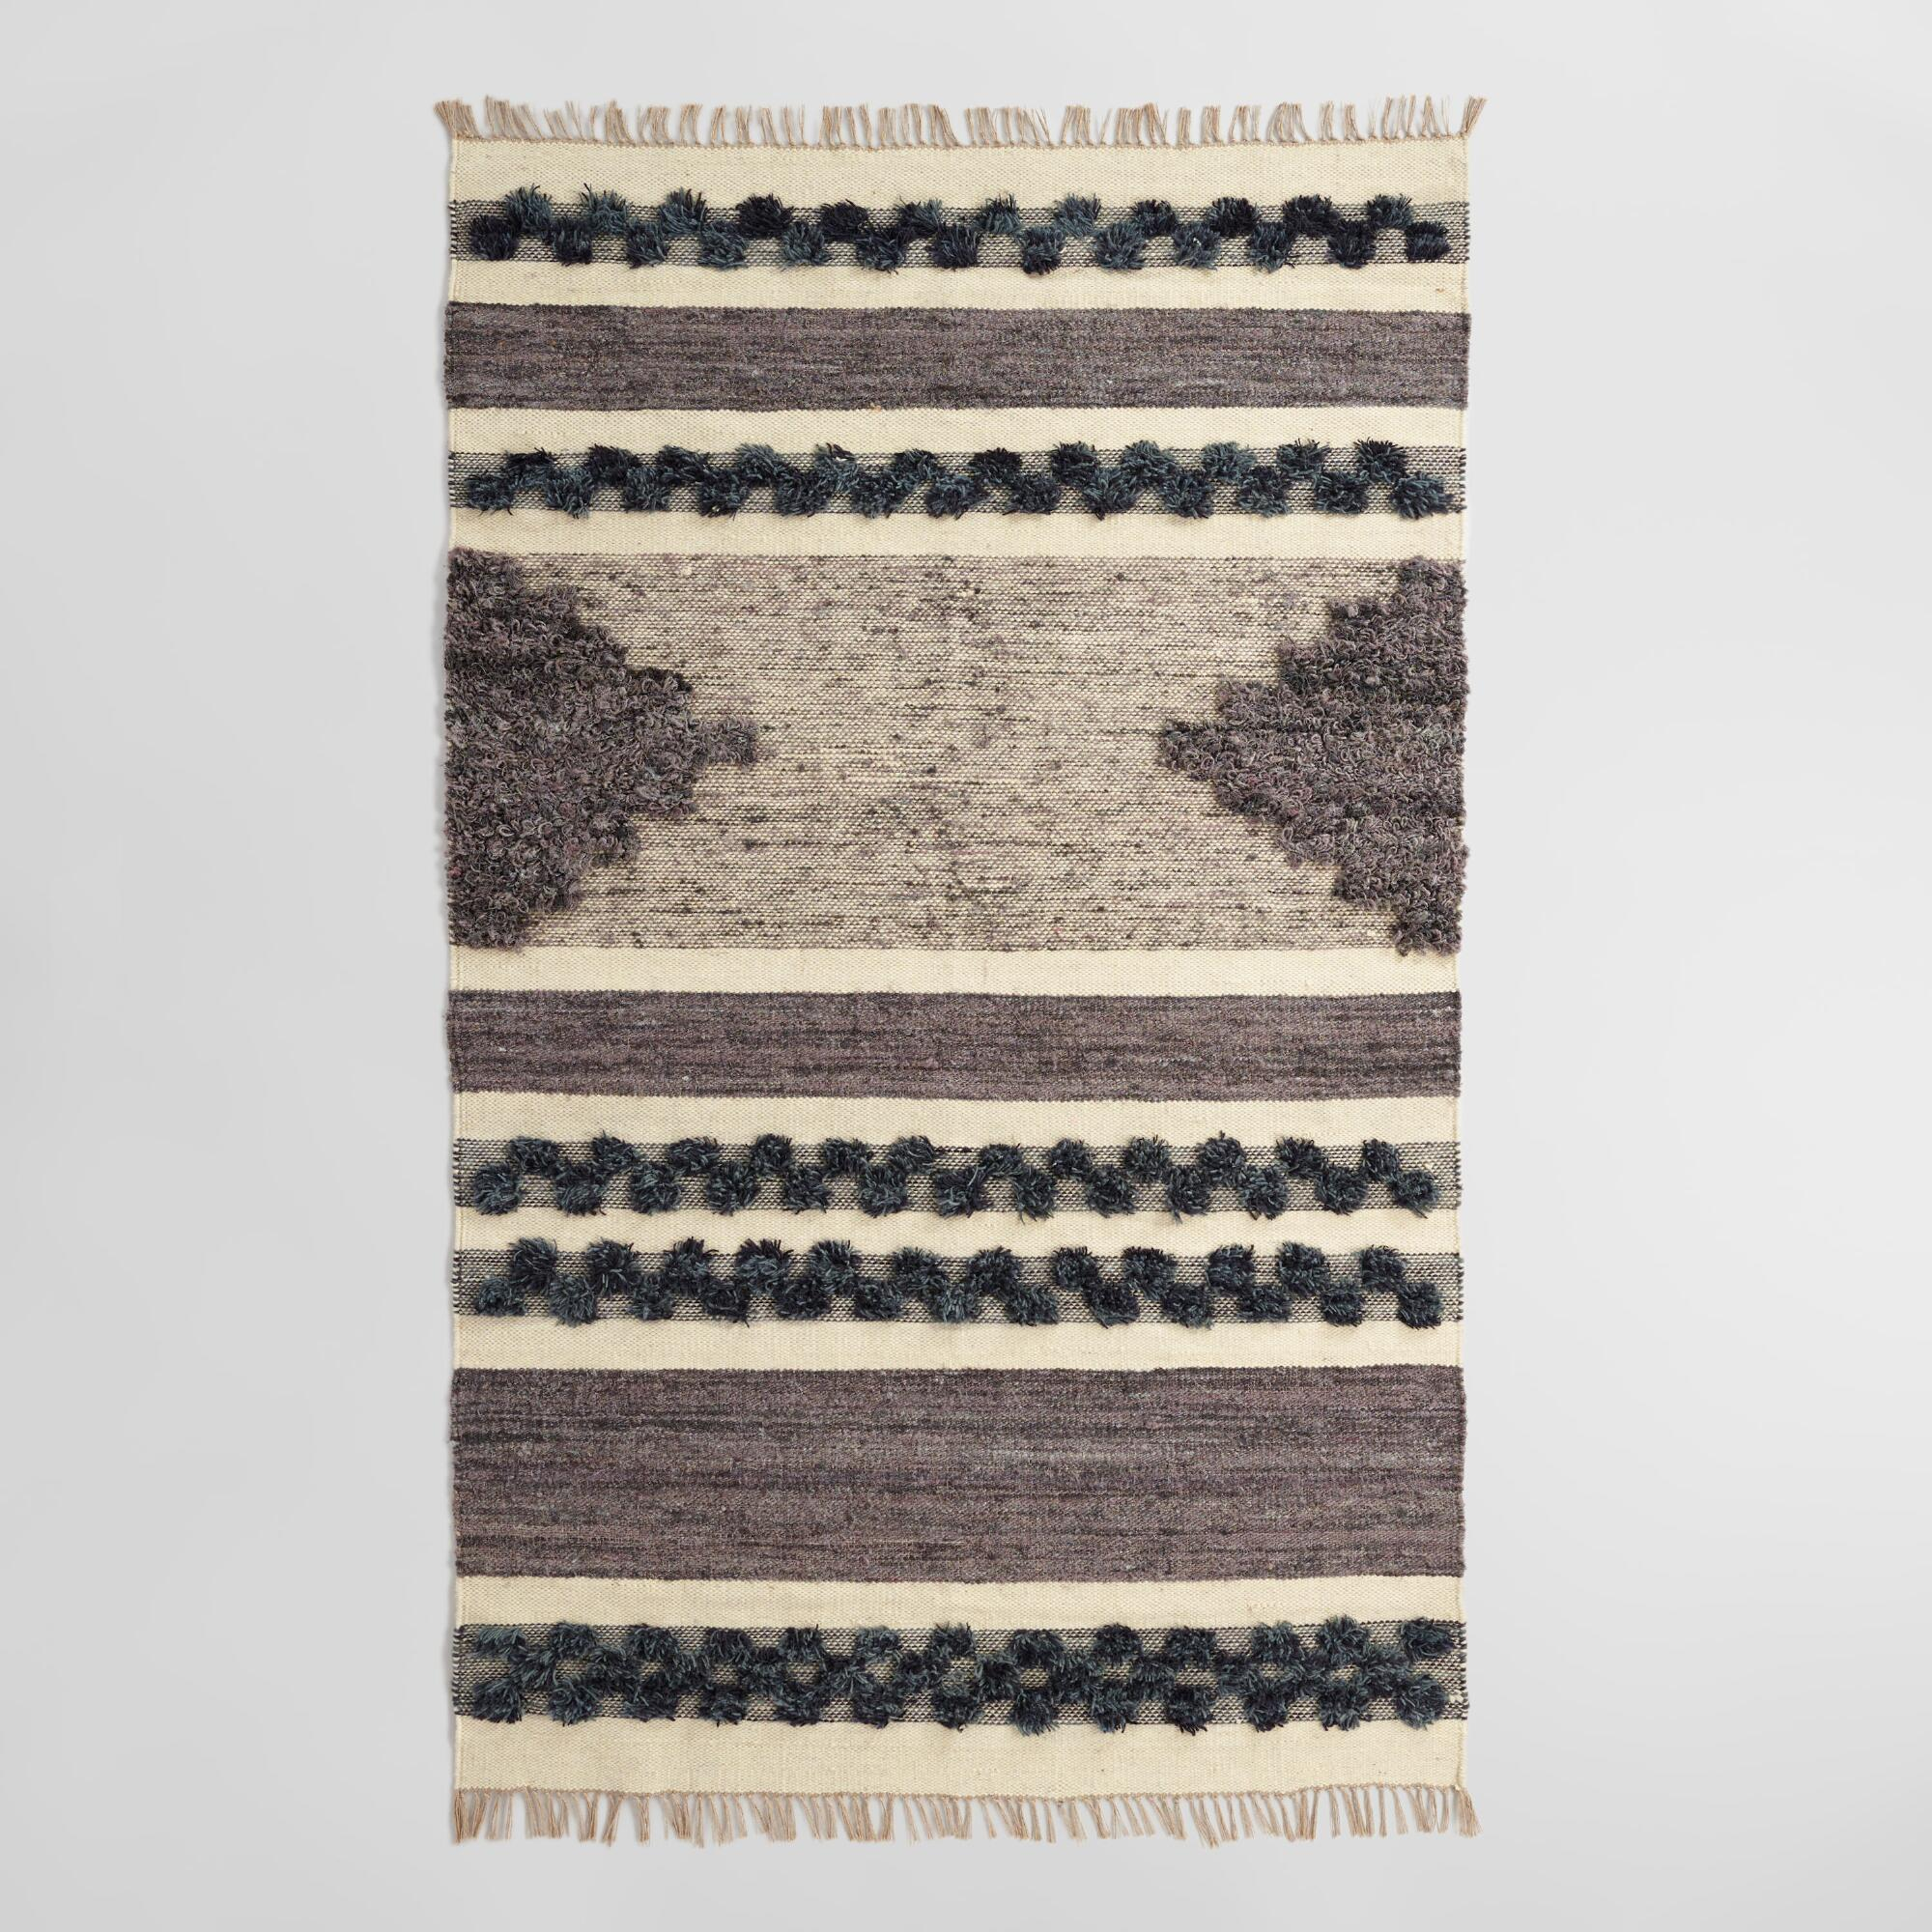 Rugs Mats Long Floor Runners Area Rugs World Market - Black and white tweed bath rug for bathroom decorating ideas